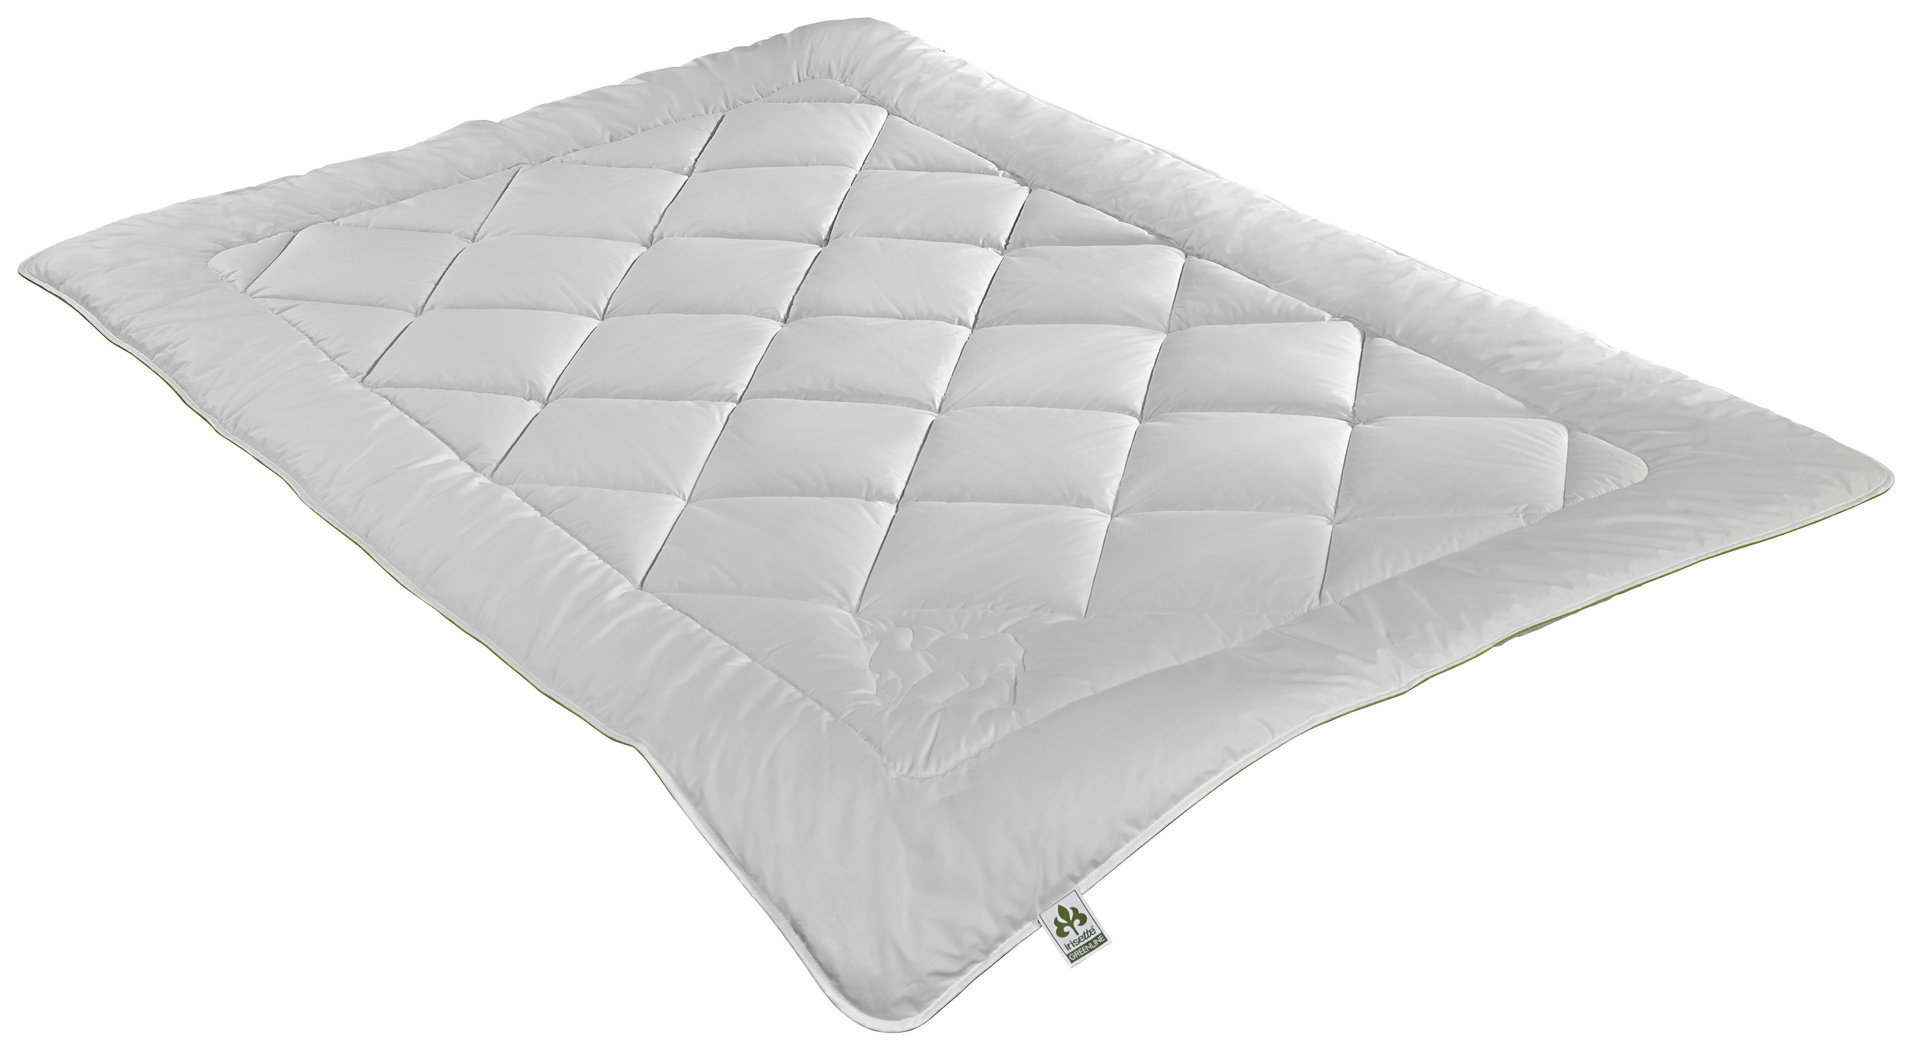 Irisette Steppbett Greenline Kamel Eco Duo 135x200cm Bettwarenstore24